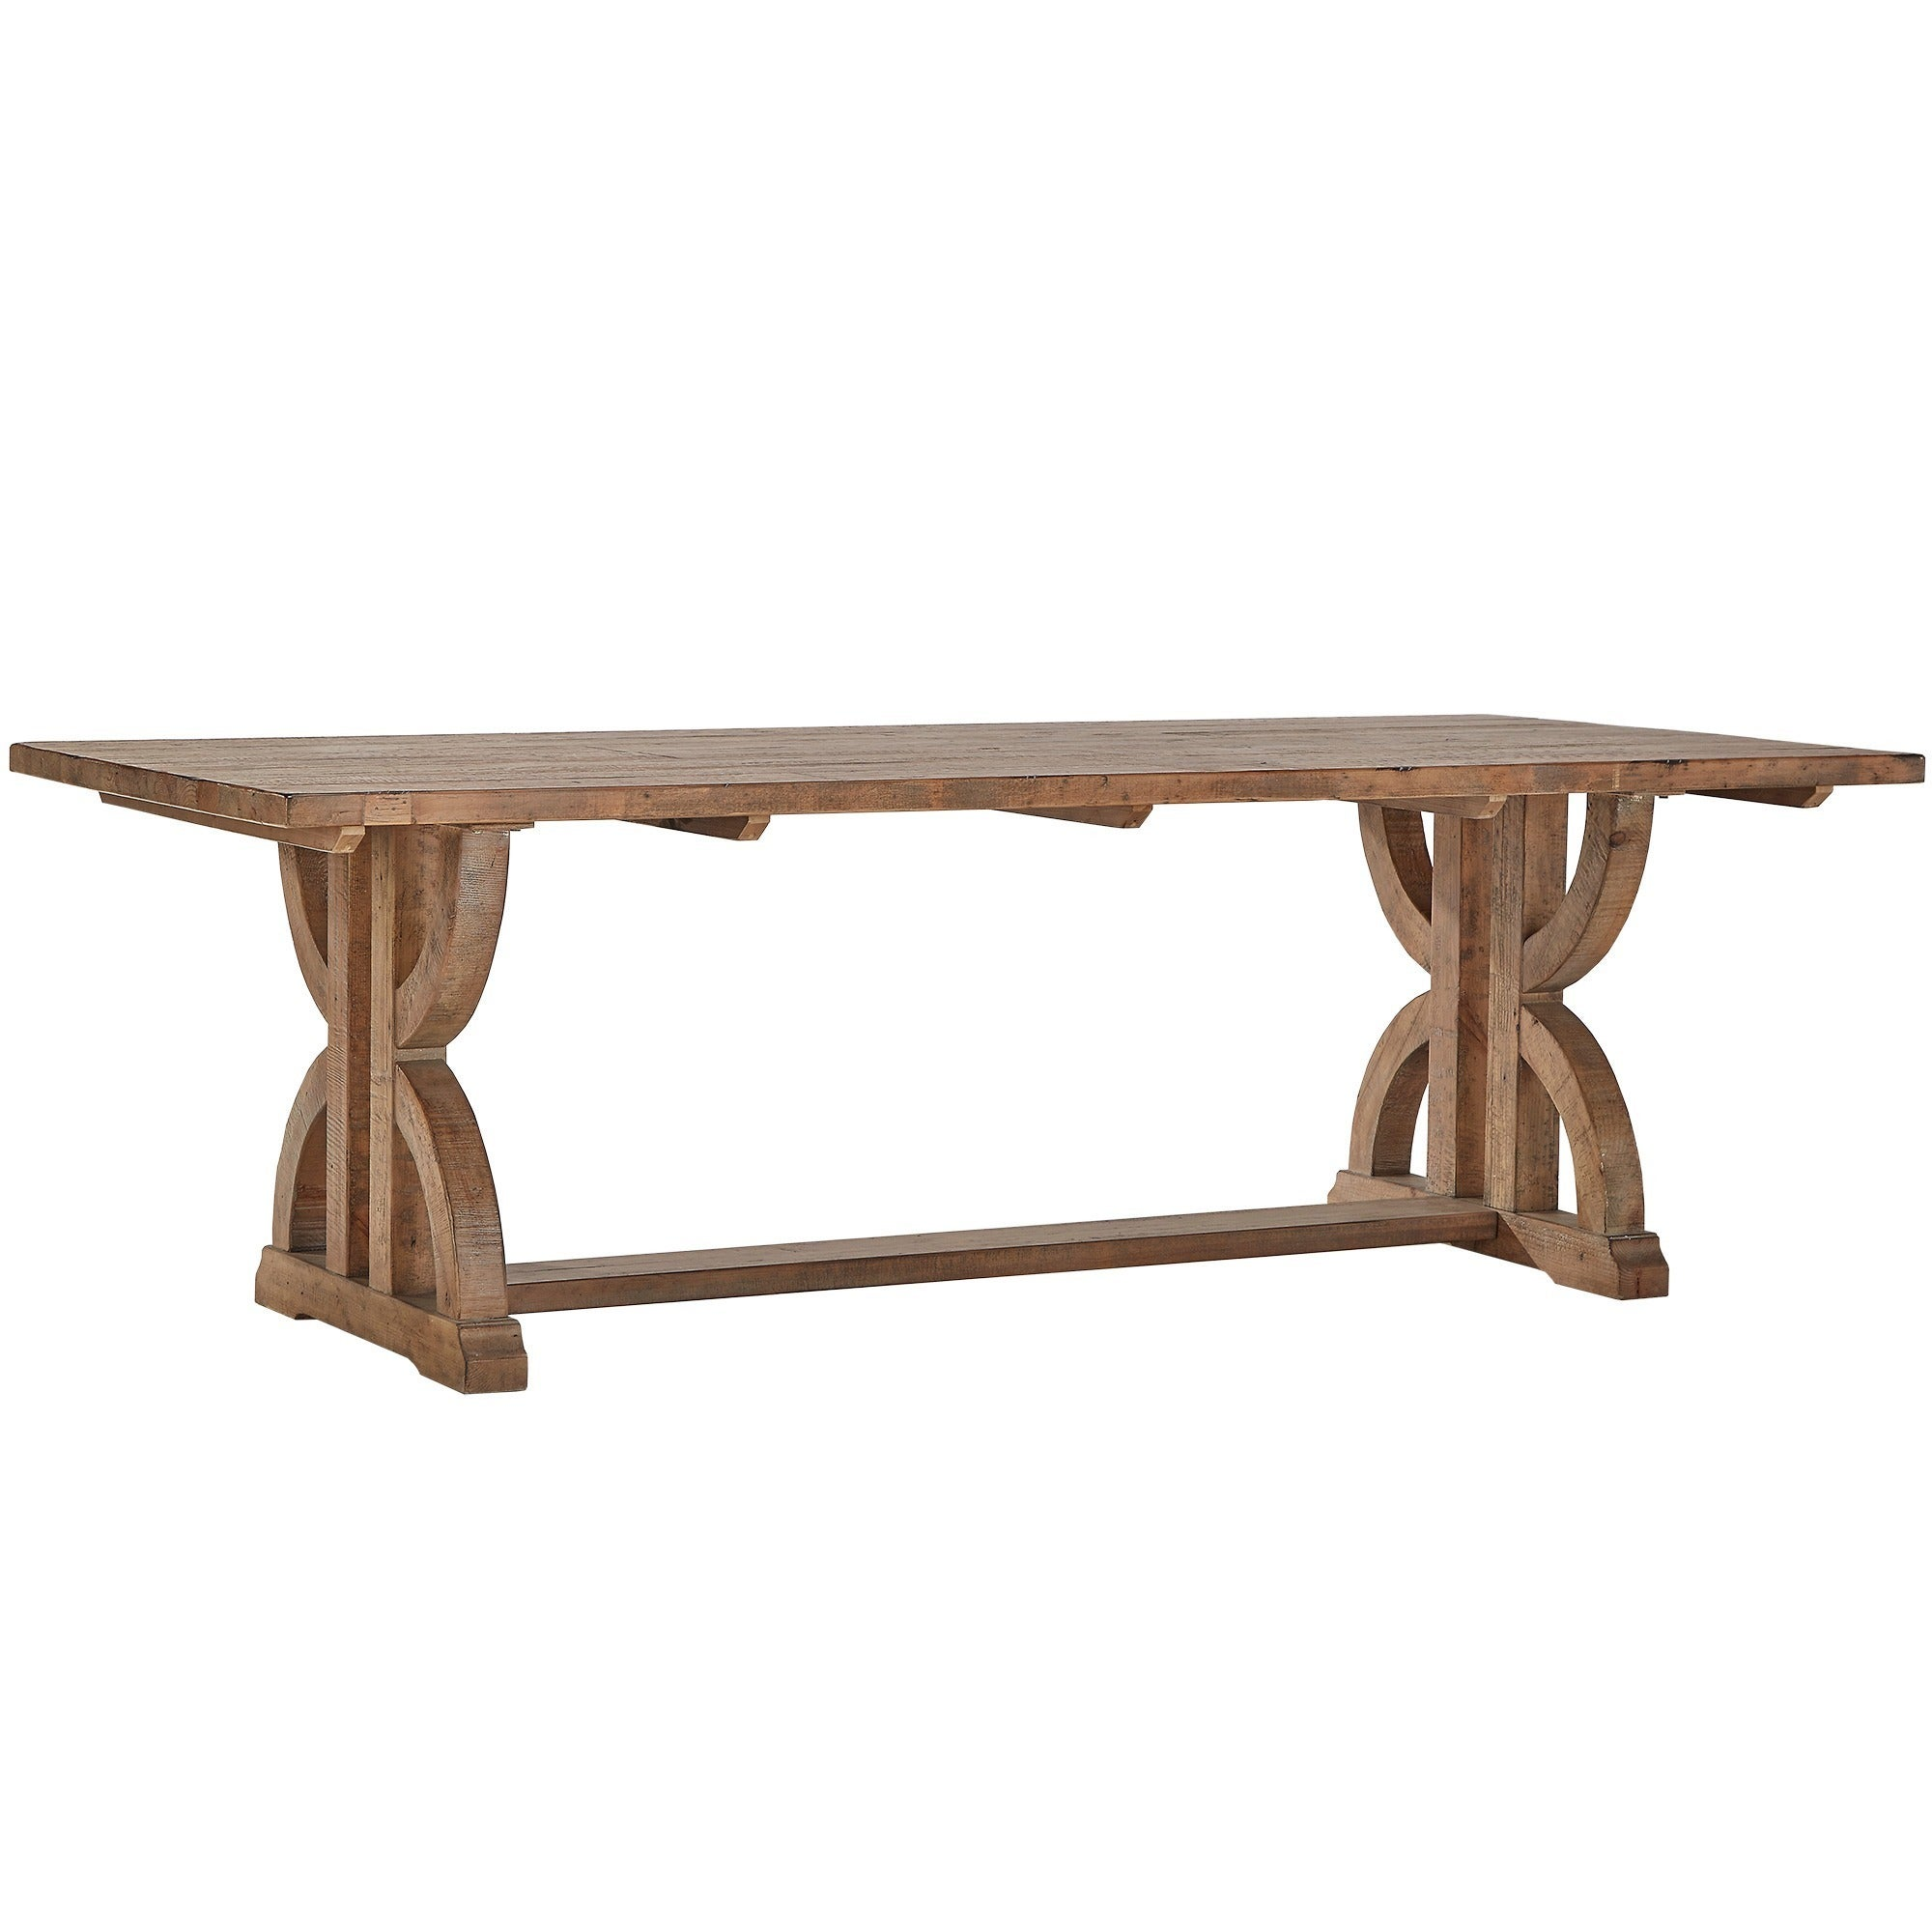 Paloma Salvaged Reclaimed Wood Rectangular Trestle Dining Set by iNSPIRE Q  Artisan - Free Shipping Today - Overstock.com - 18844916